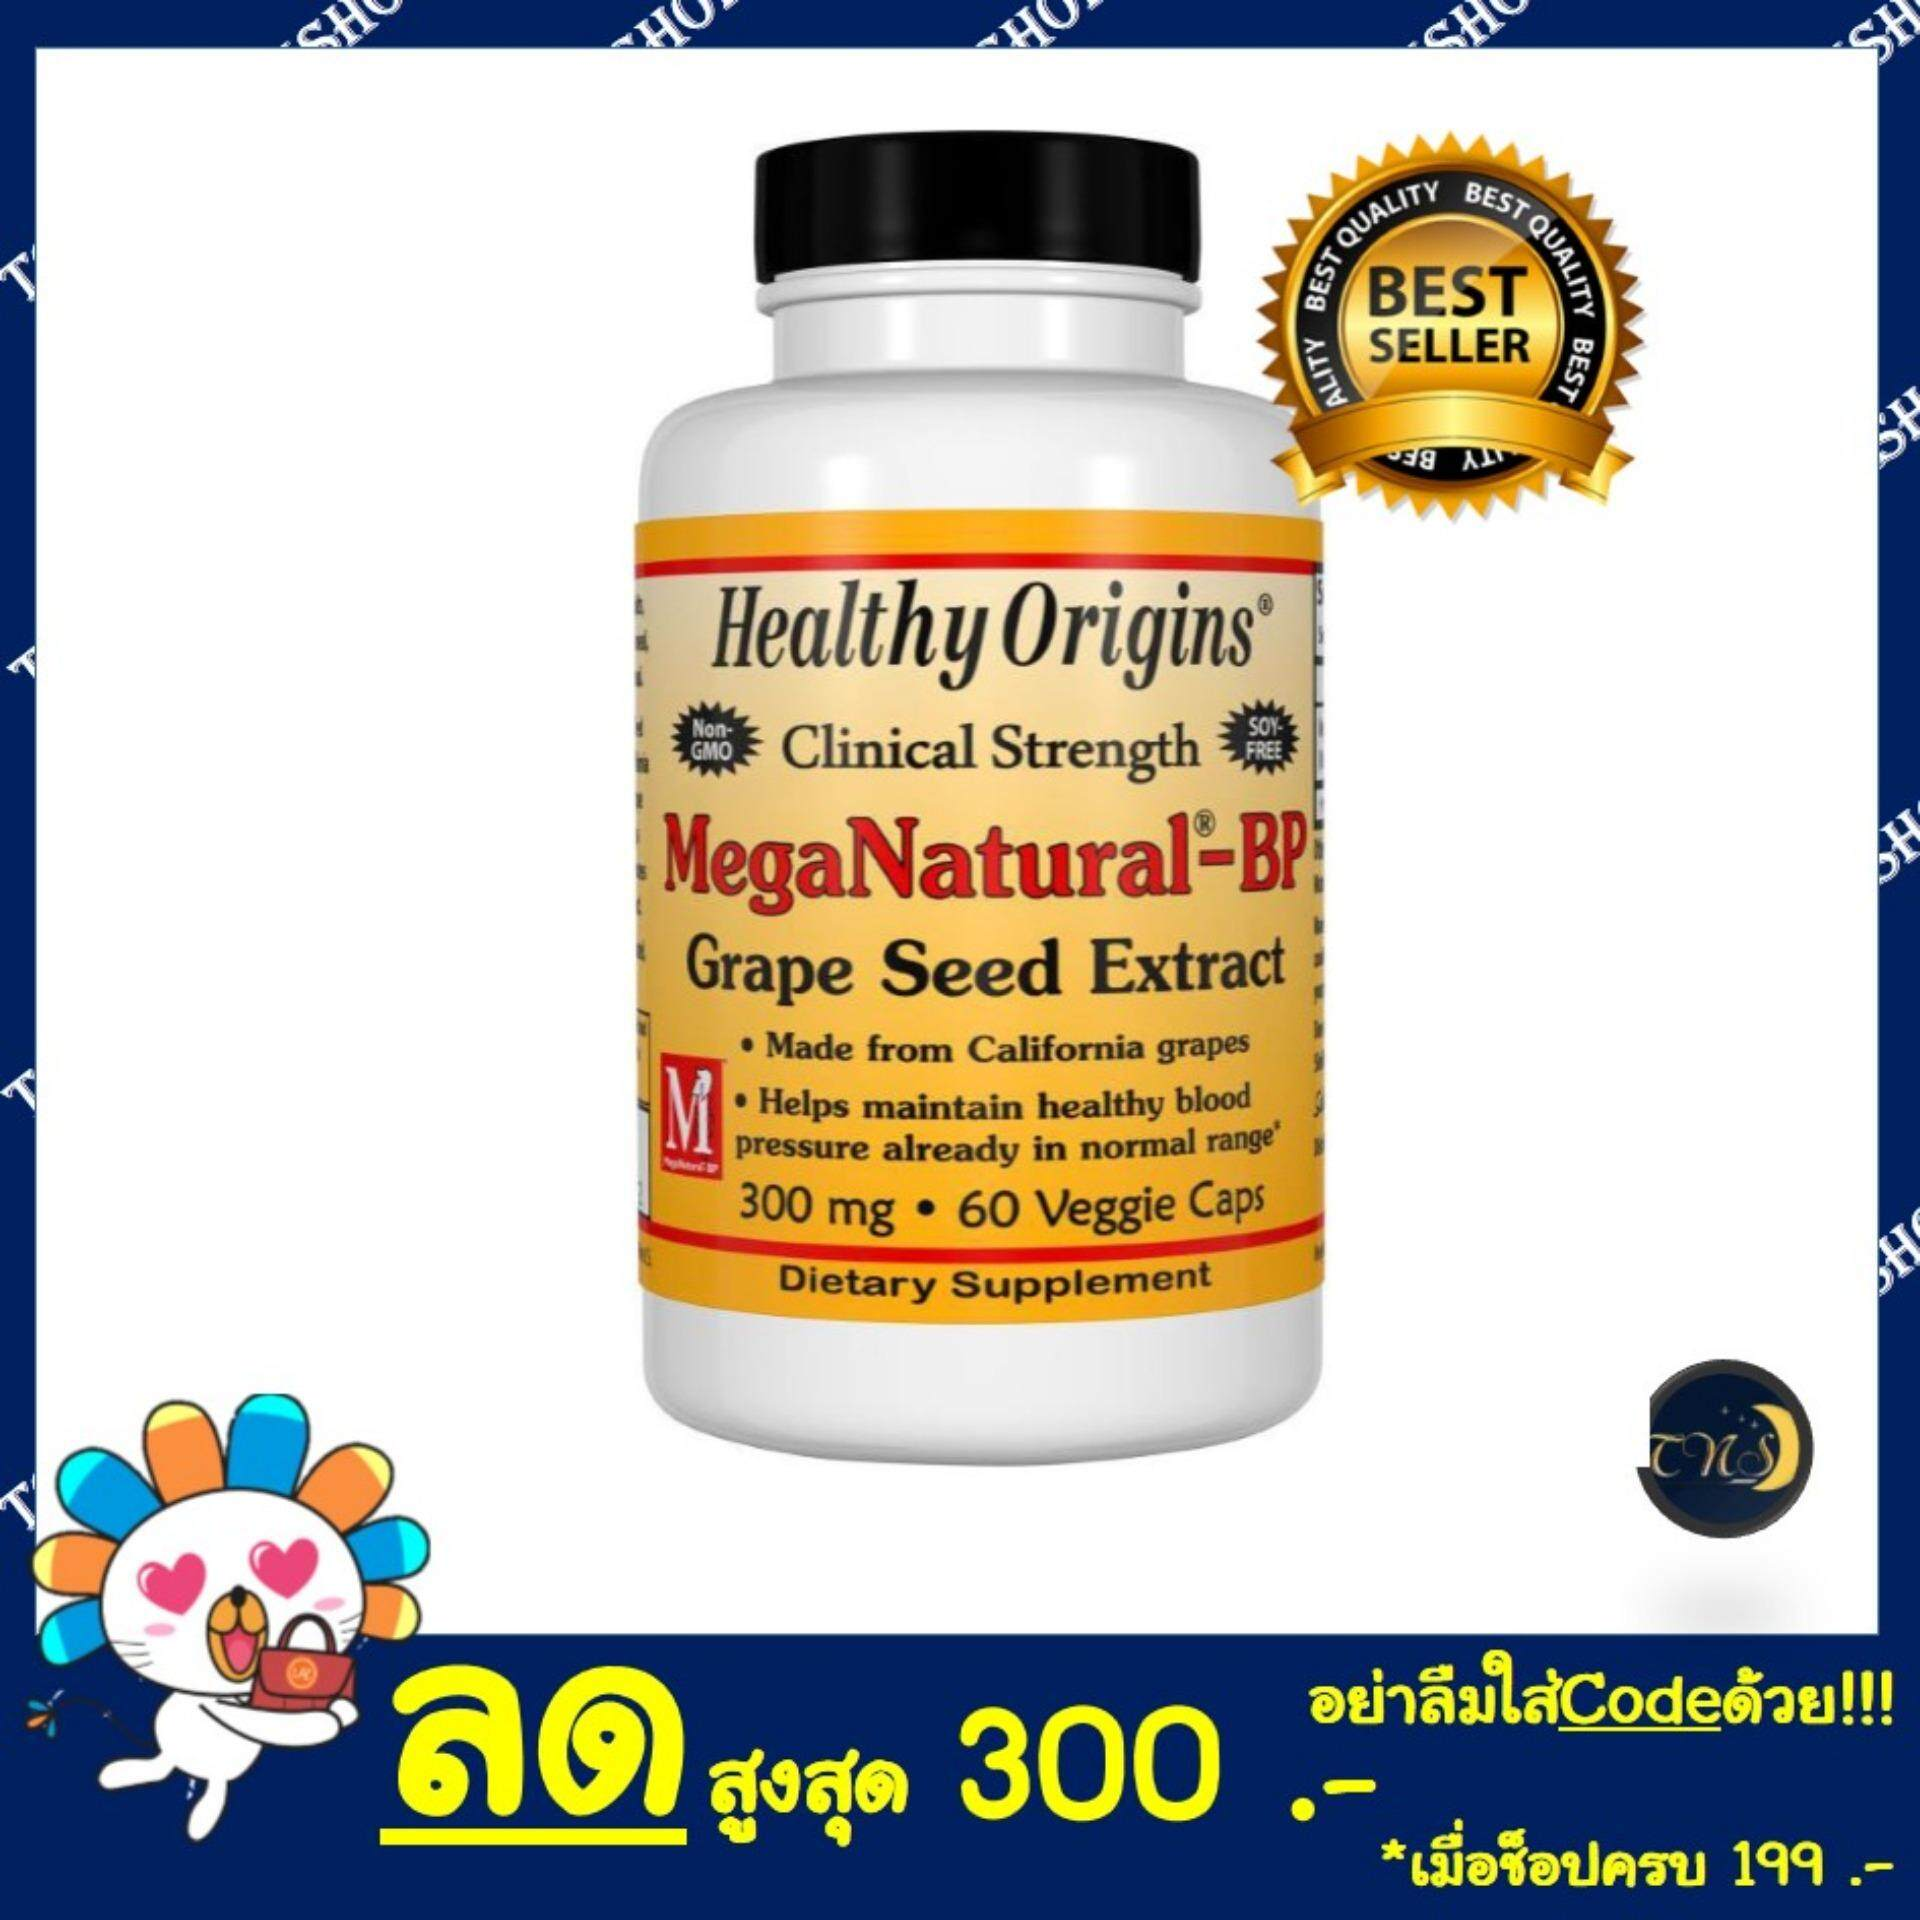 Healthy Origins MegaNatural-BP Grape Seed Extract 300 mg 60 Cap